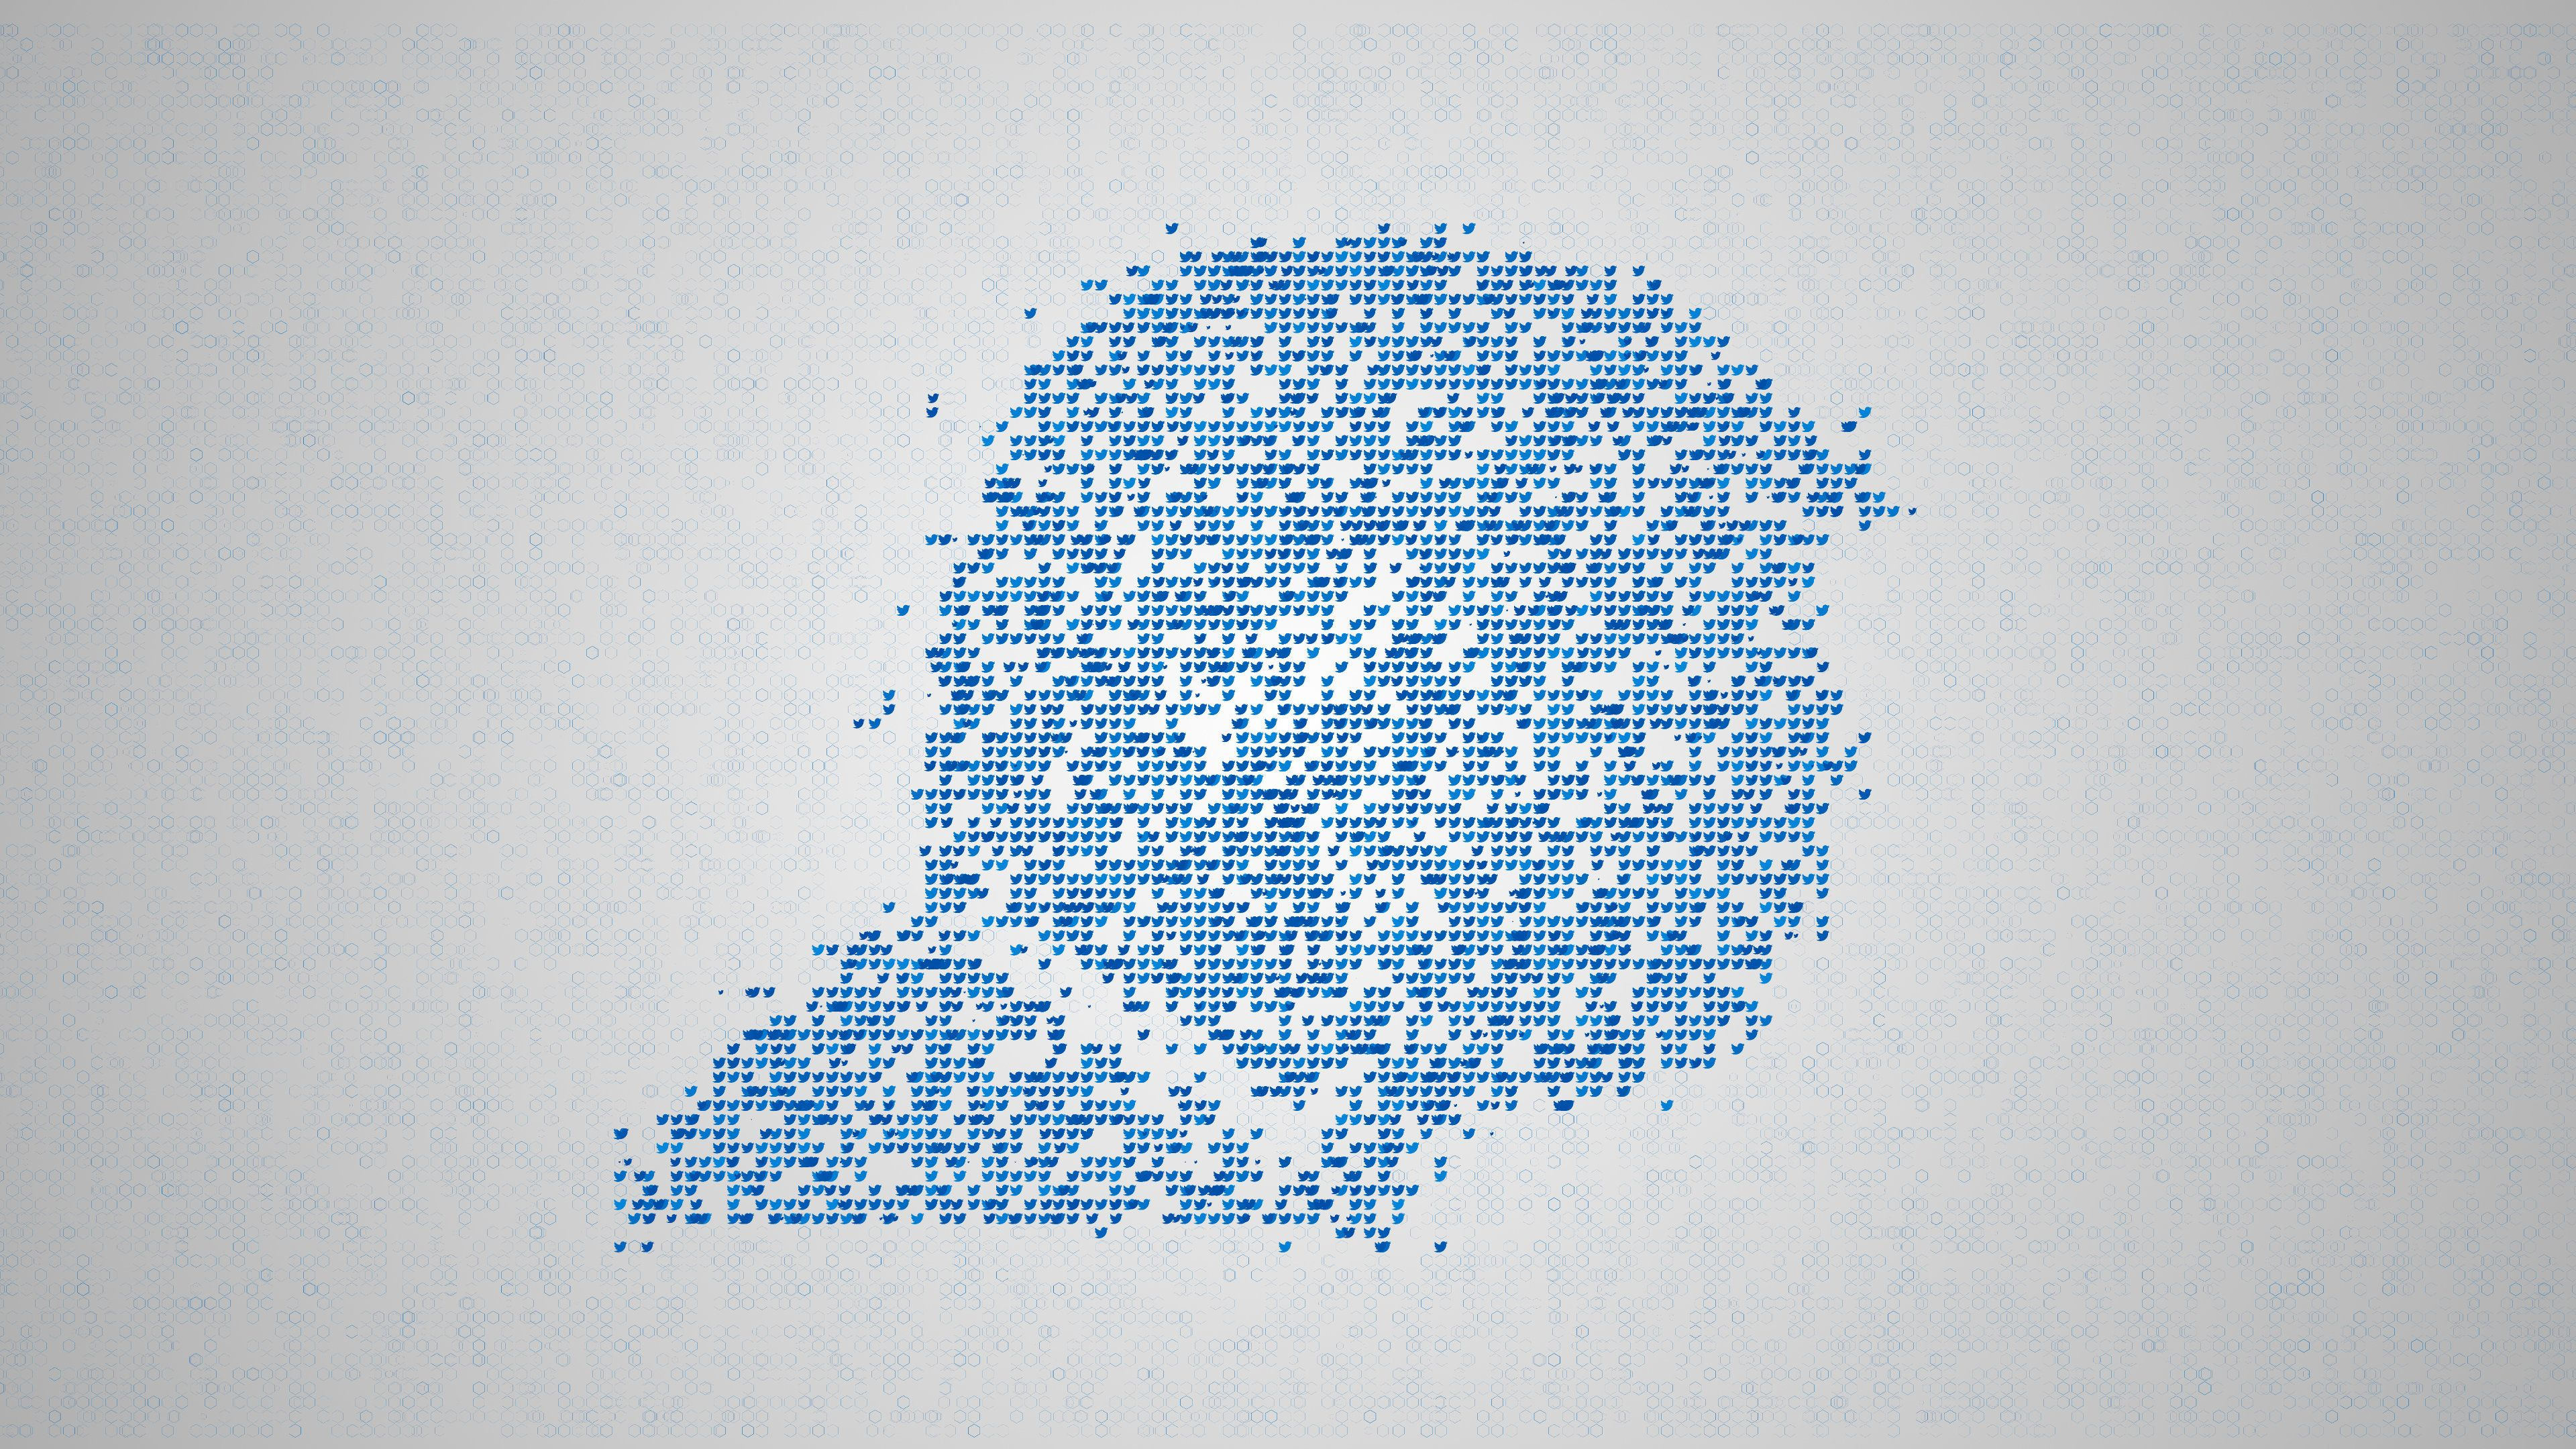 Social network concept, a lot of tweets make closeup silhouette of a human